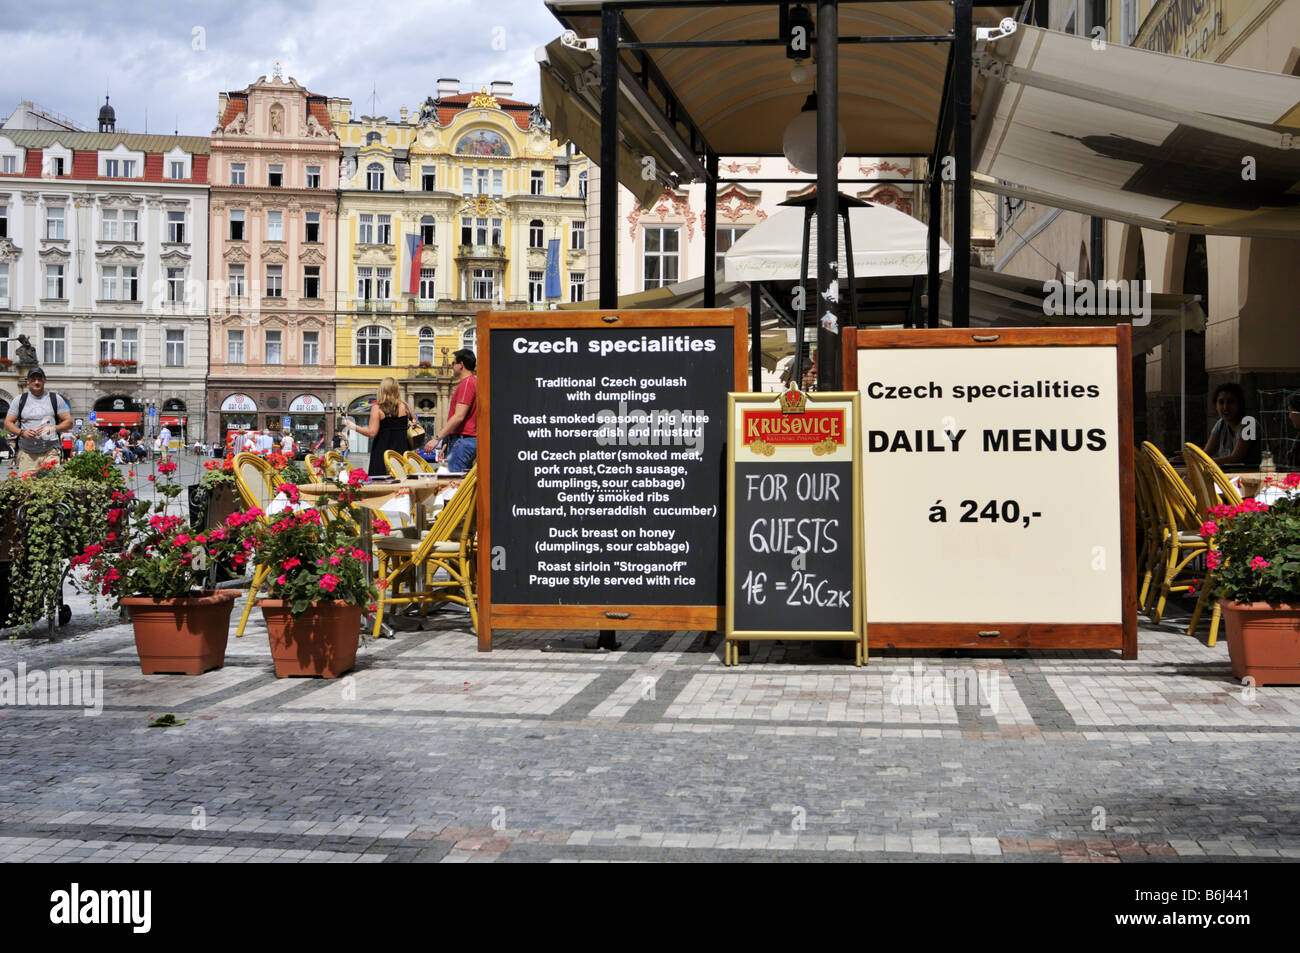 Traditionelle Tschechische Küche In Prag Czech Cuisine Stockfotos And Czech Cuisine Bilder Alamy